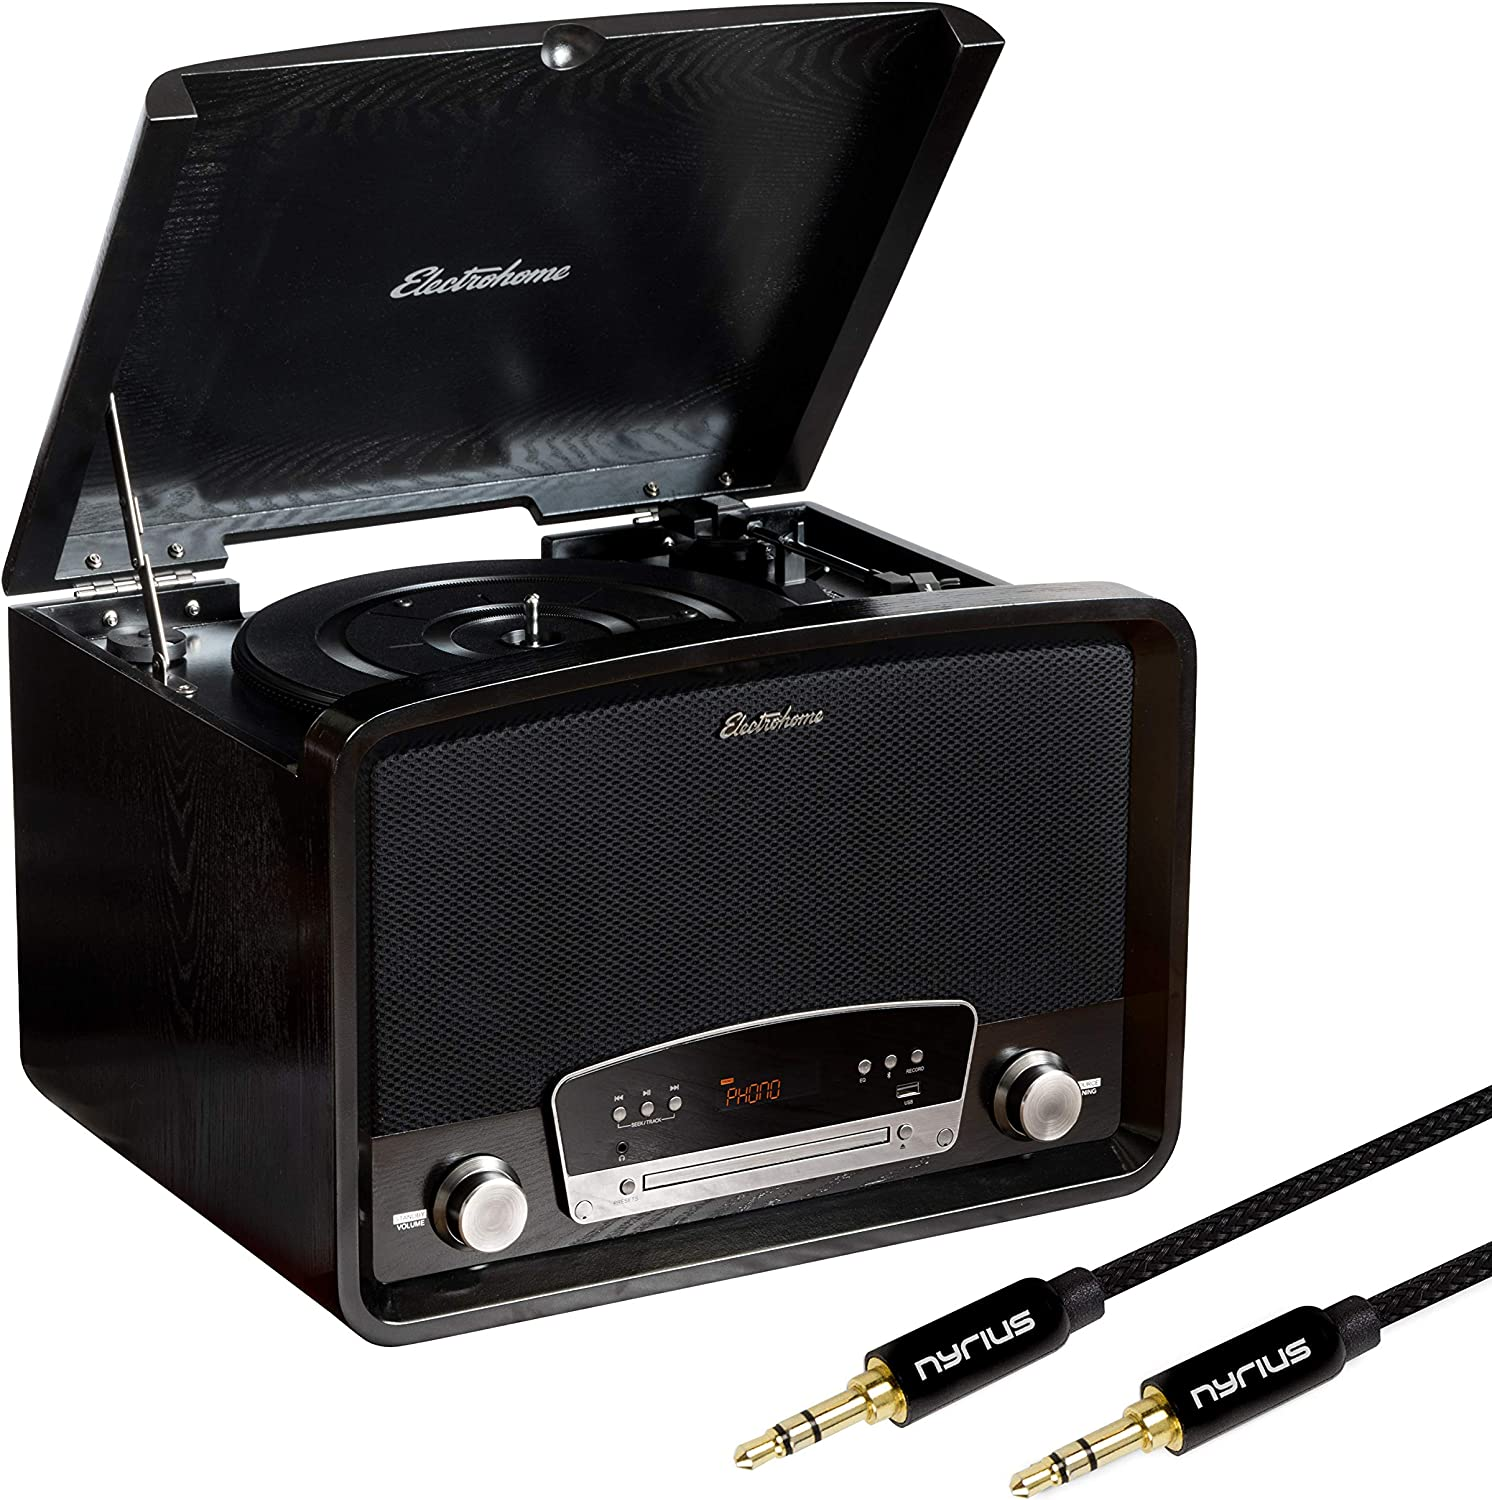 Electrohome Kingston 7-in-1 Vintage Vinyl Record Player Stereo System with 3-Speed Turntable, Bluetooth, AM/FM Radio, CD, Aux in, RCA/Headphone Out with Bonus 3.5mm Aux Cable (RR75B)